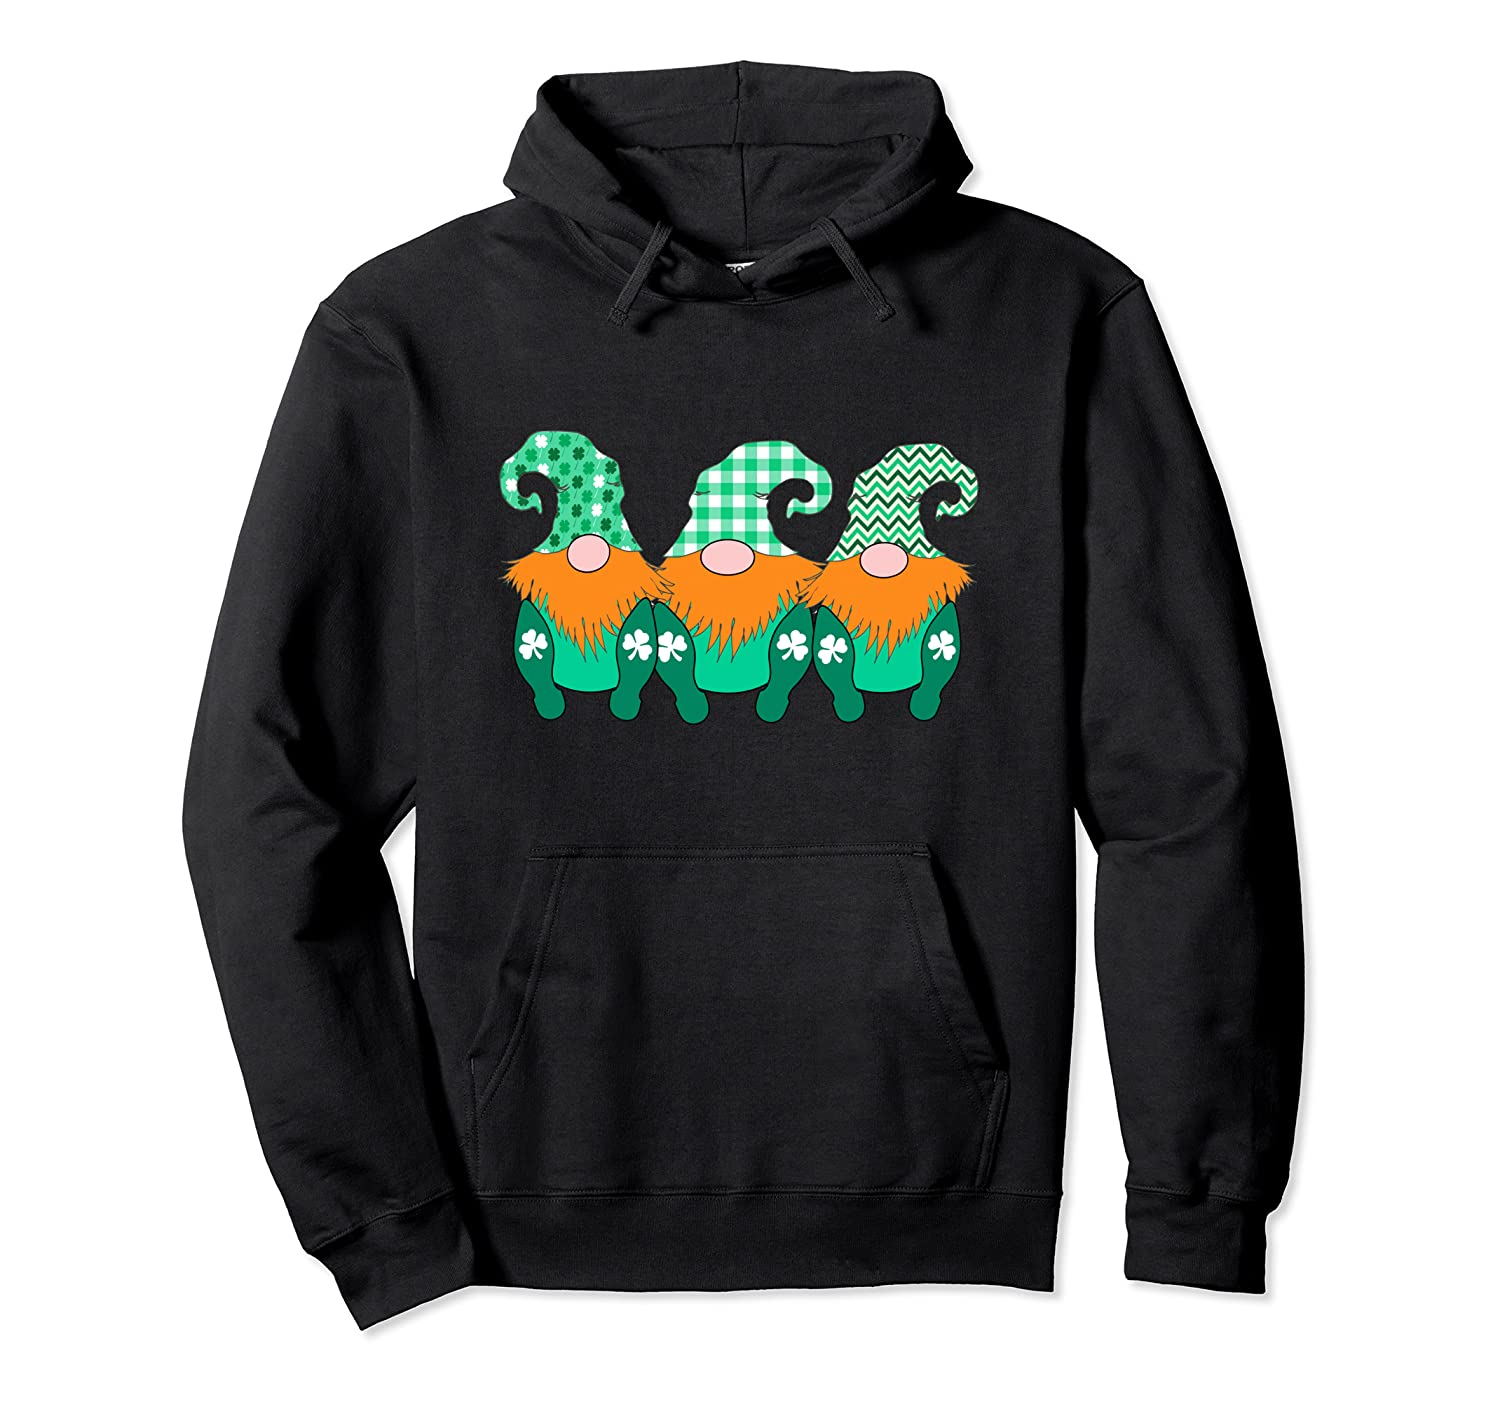 3 Cute Irish Gnomes Leprechauns Green Shamrocks Pullover Hoodie-Awarplus